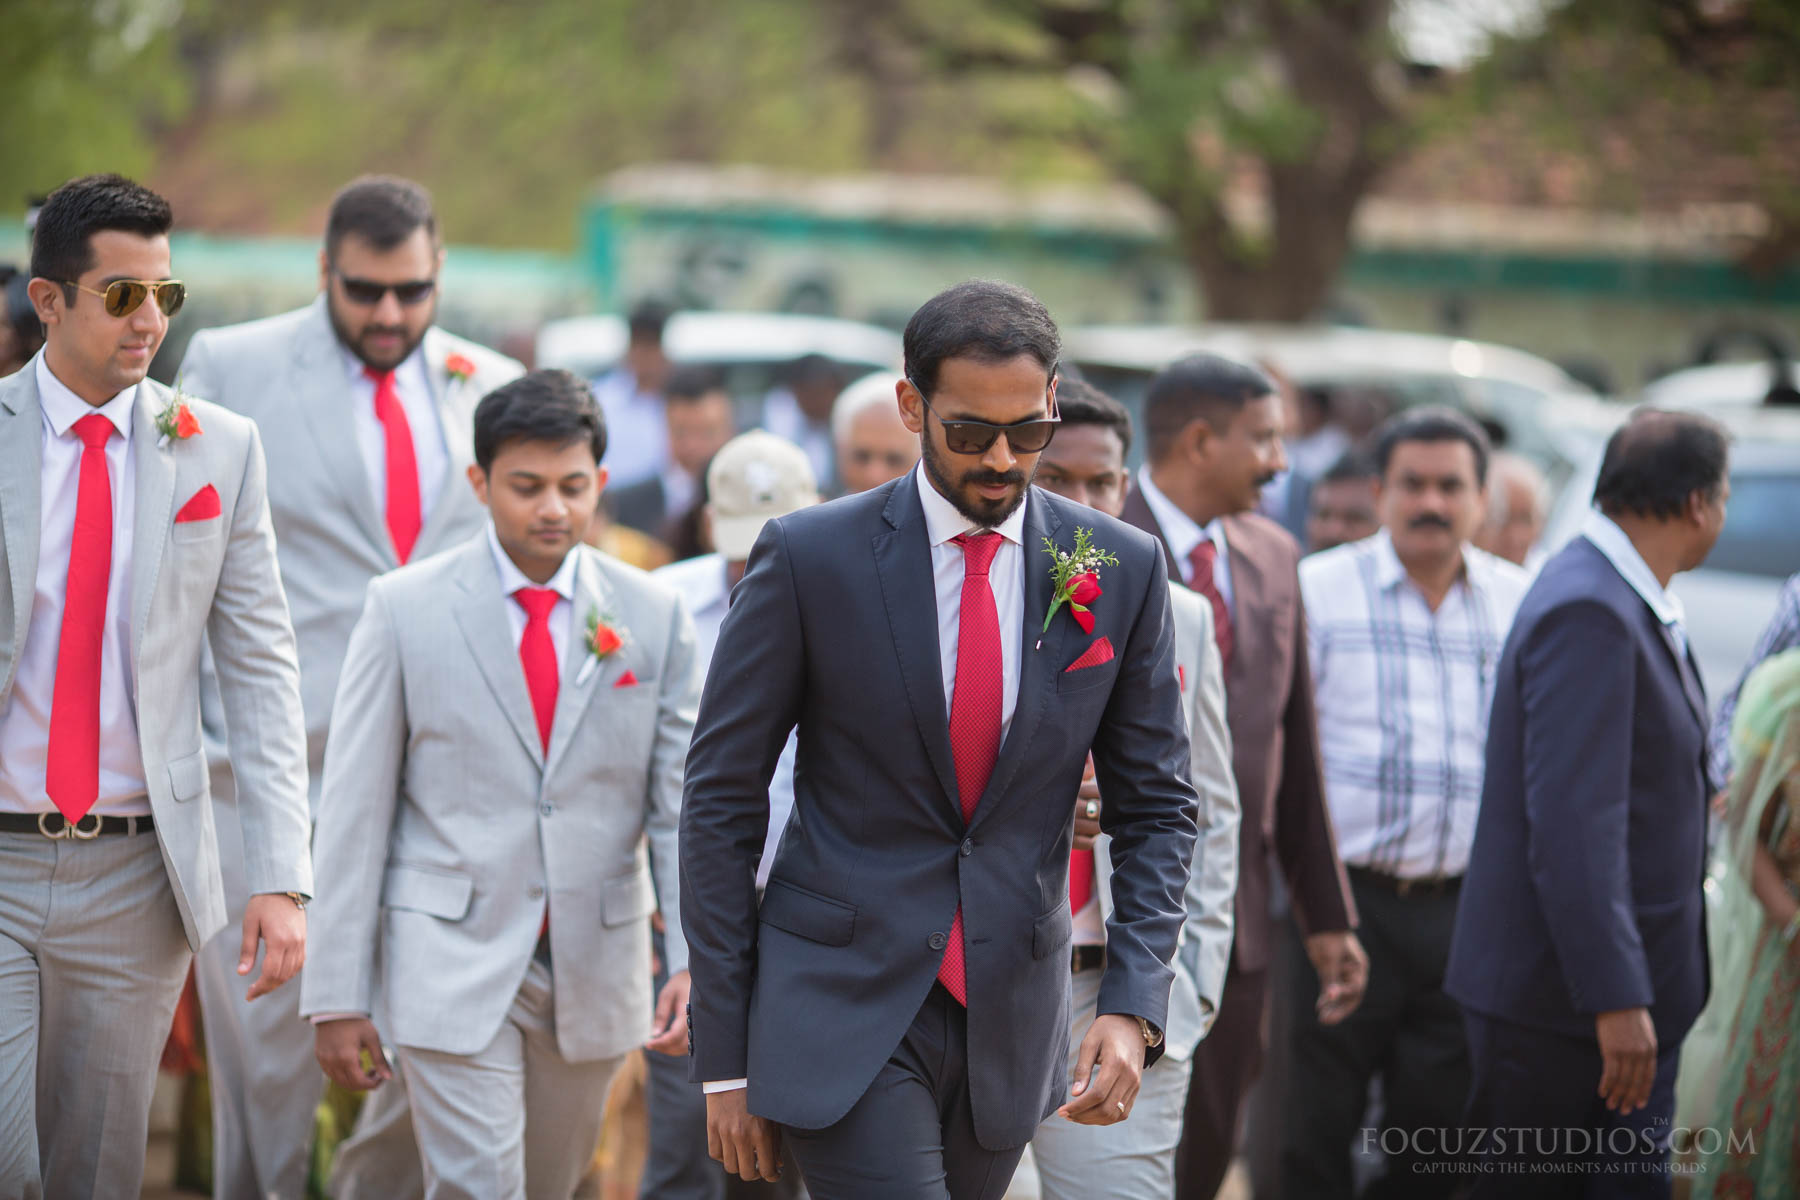 focuz studios best christian wedding photography tamil nadu 11